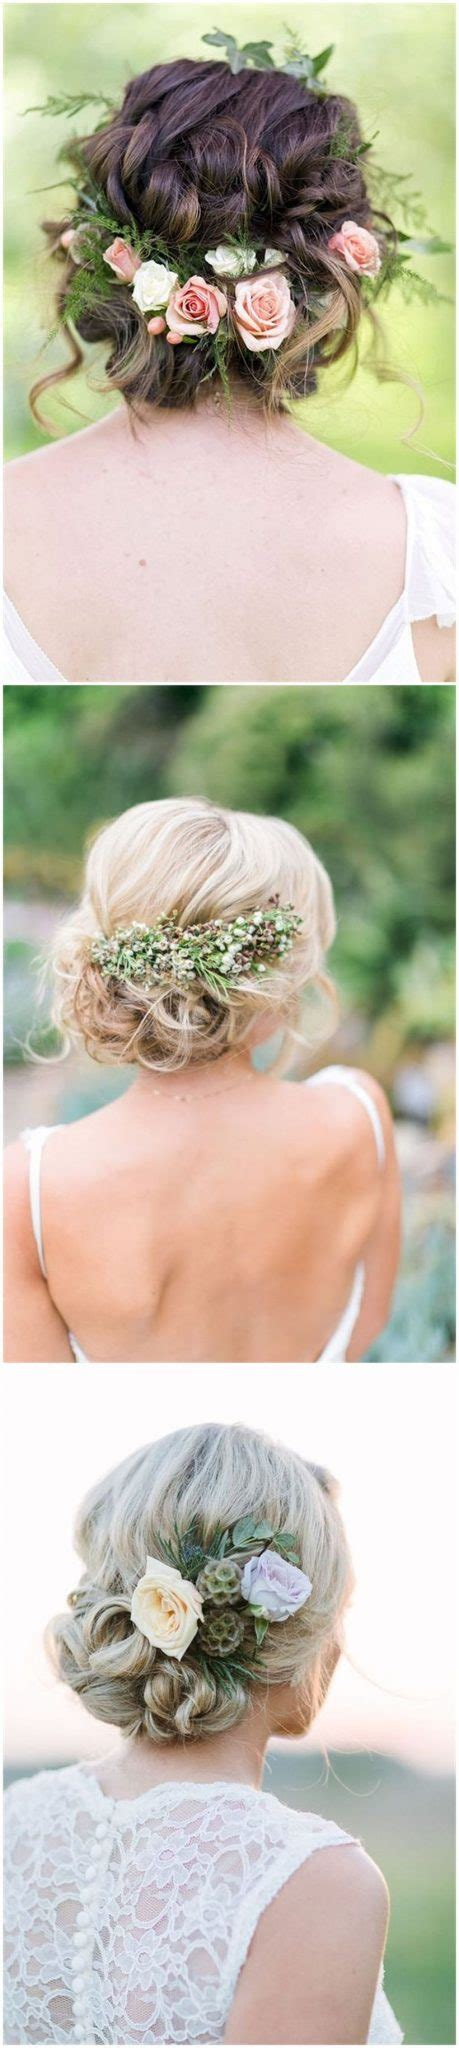 Rustic Wedding Hairstyles by Gorgeous Rustic Wedding Hairstyles Ideas 86 Fashion Best